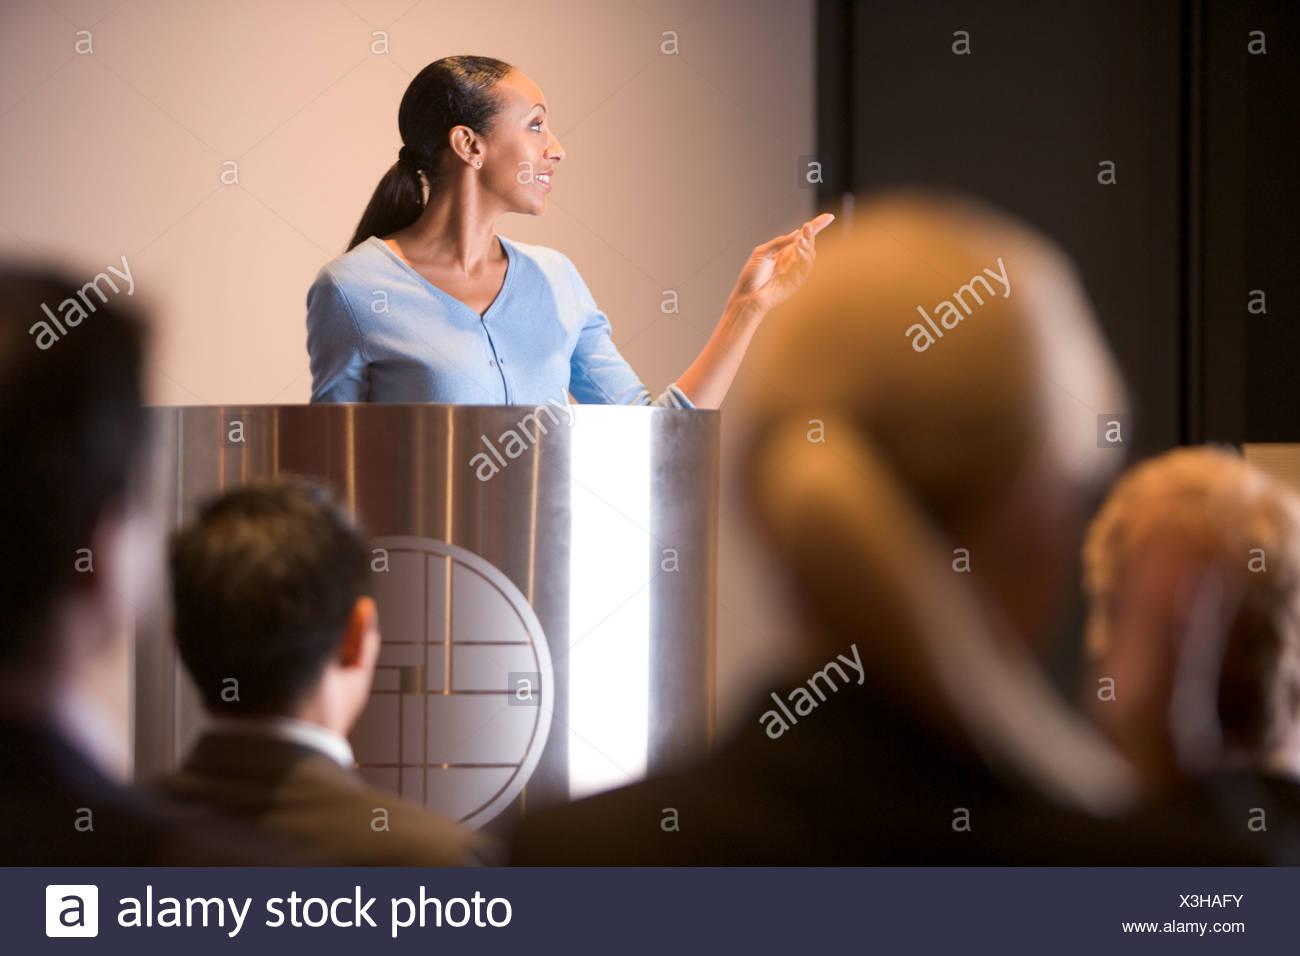 Businesswoman giving presentation at podium - Stock Image